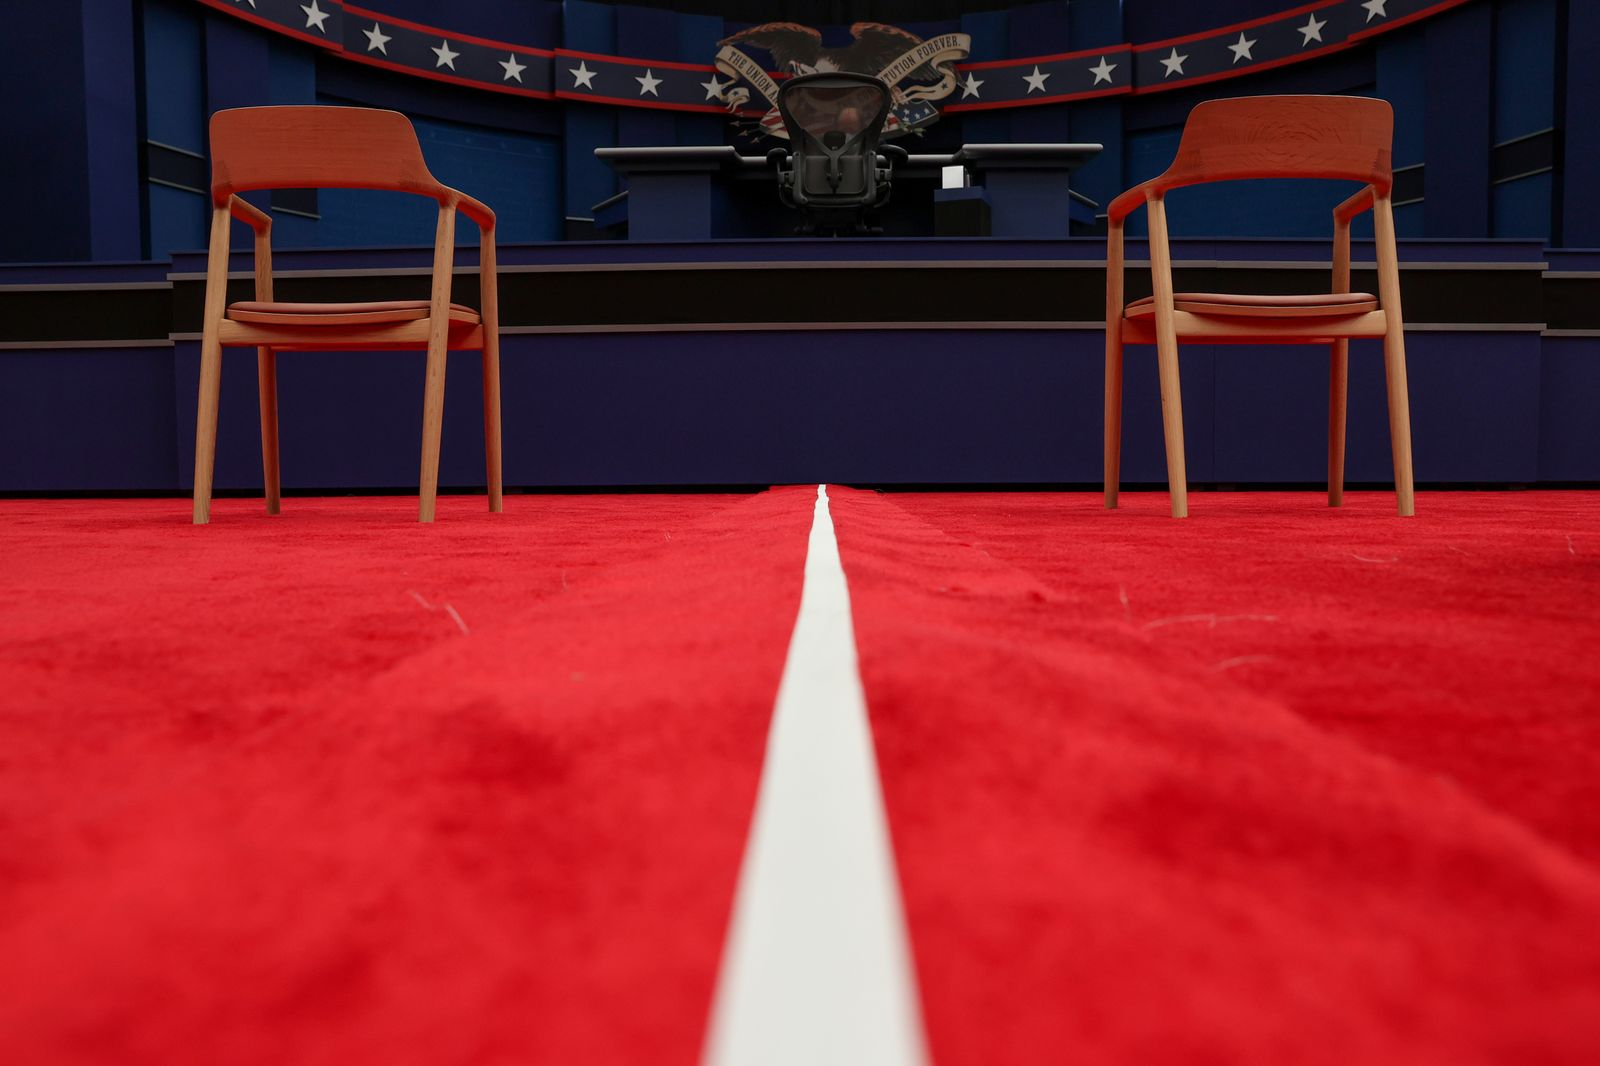 The stage awaits U.S. President Trump and Democratic U.S. presidential nominee Biden before their first presidential debate in Cleveland, Ohio